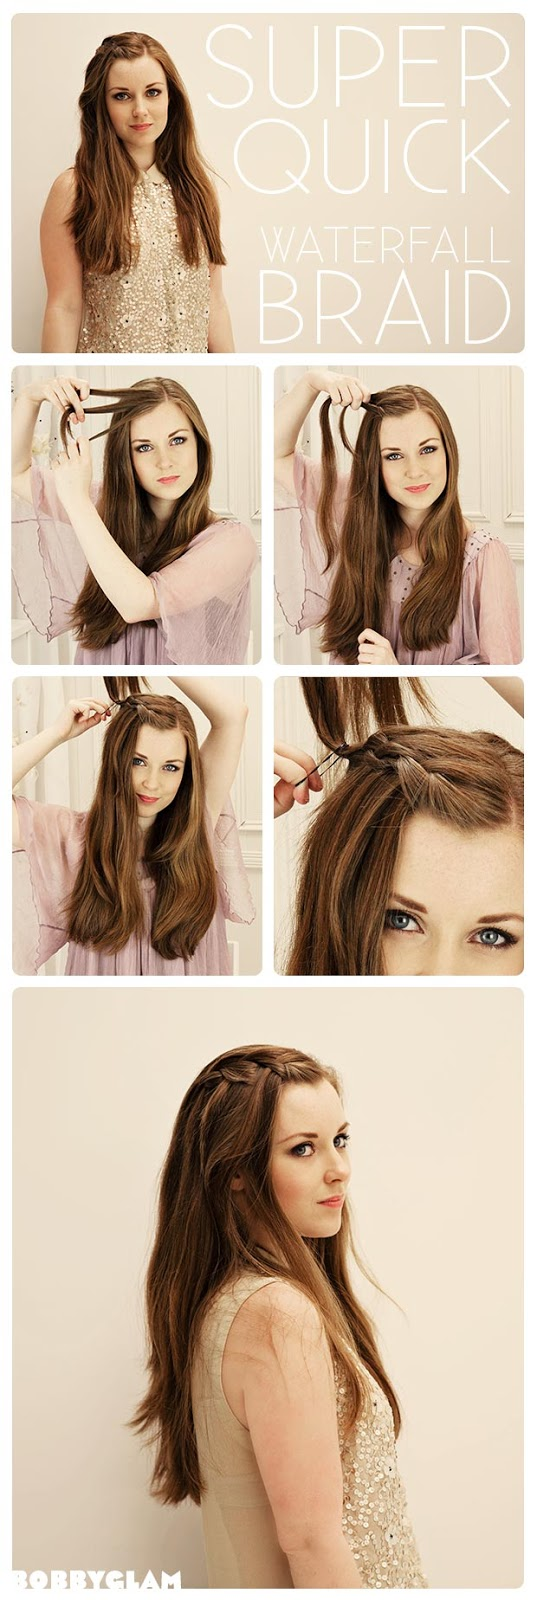 Waterfall Braid Hair Tutorial